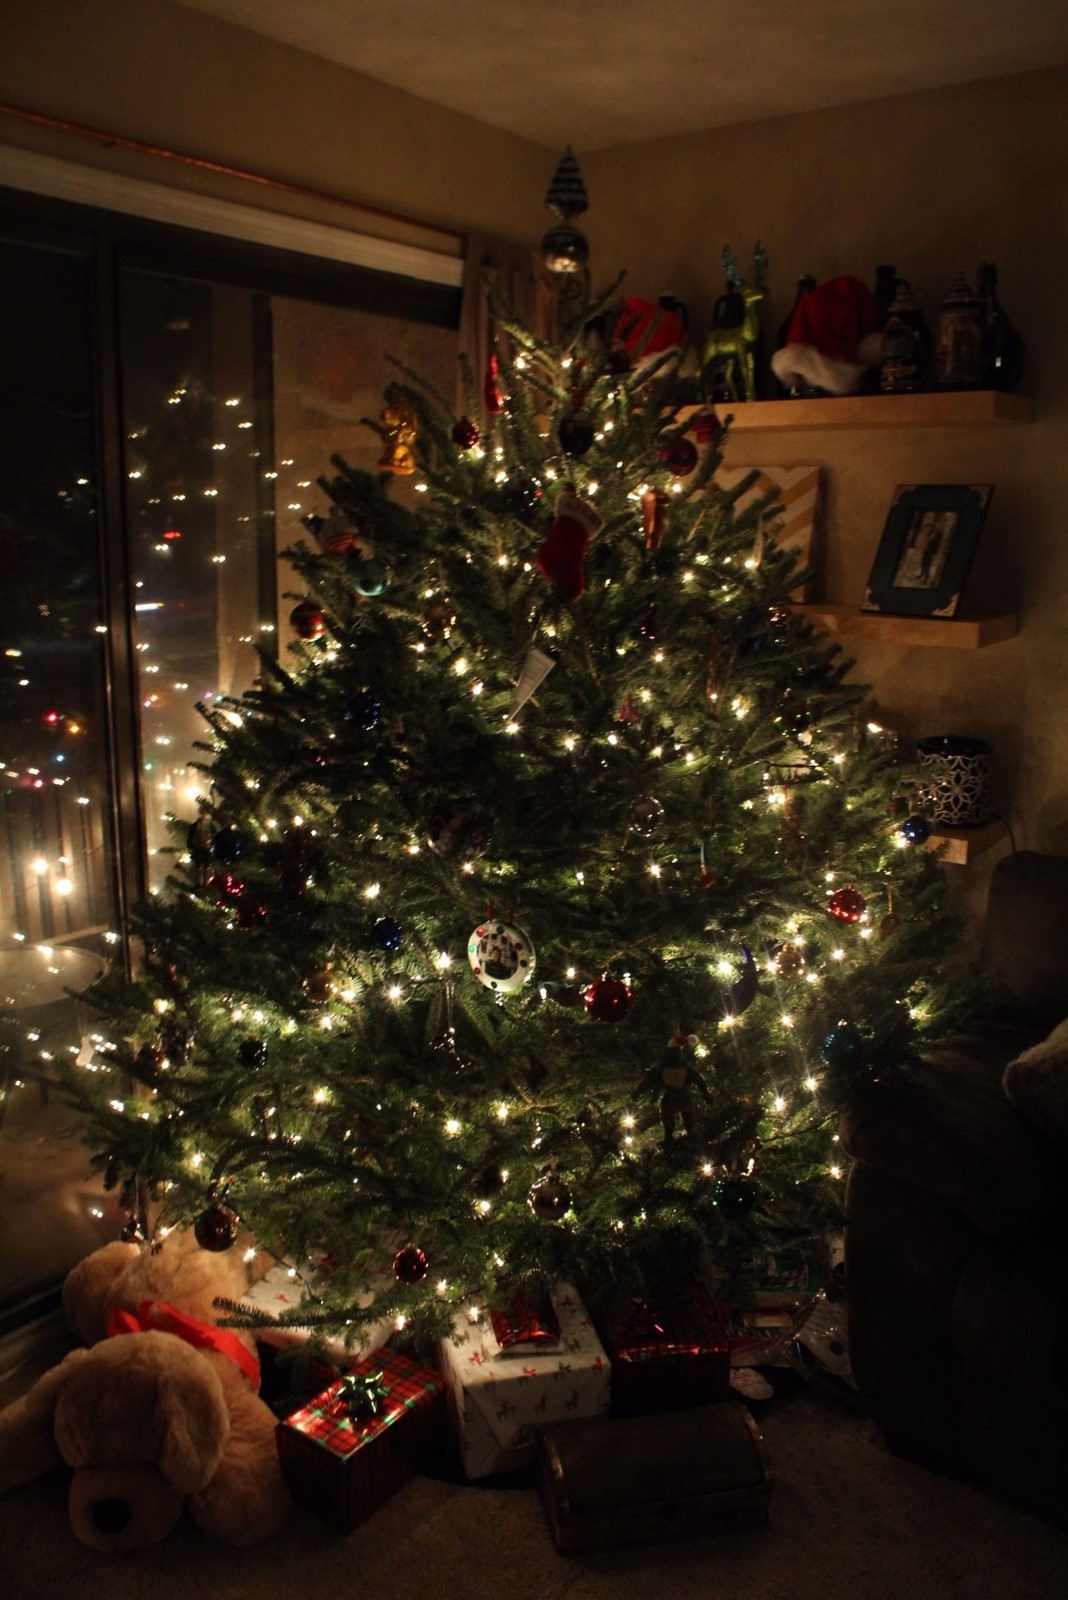 The added weight of ornaments and lights can disproportionately weigh down your tree, causing it to fall if not secured.